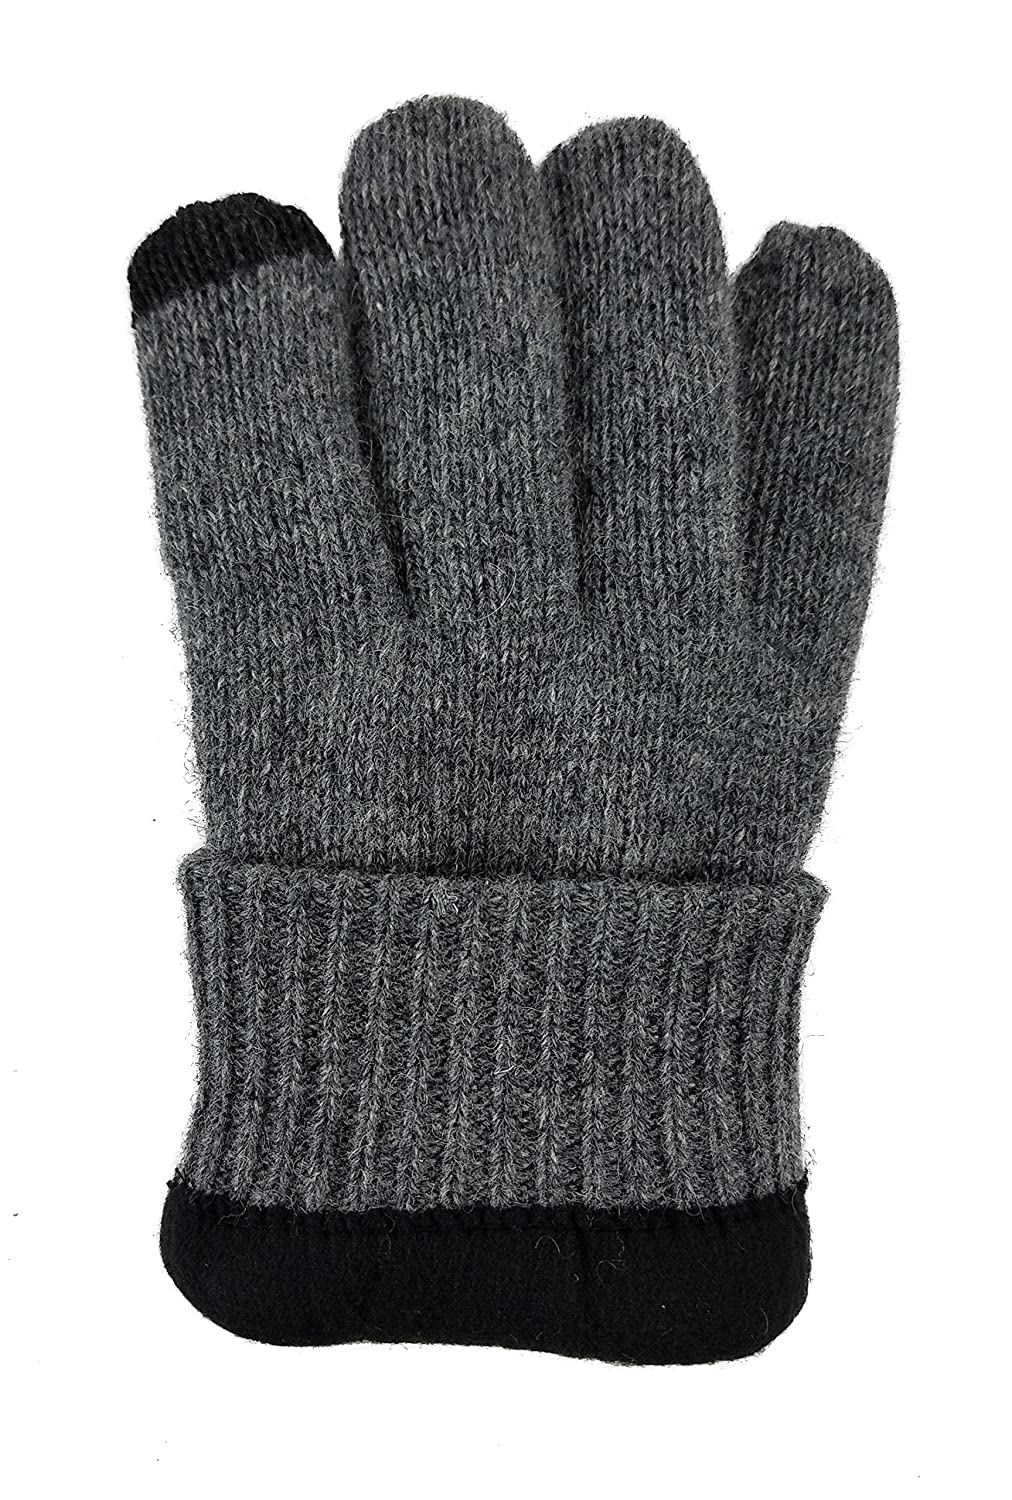 Bruceriver Mens Pure Wool Knitted Gloves with Thinsulate Lining